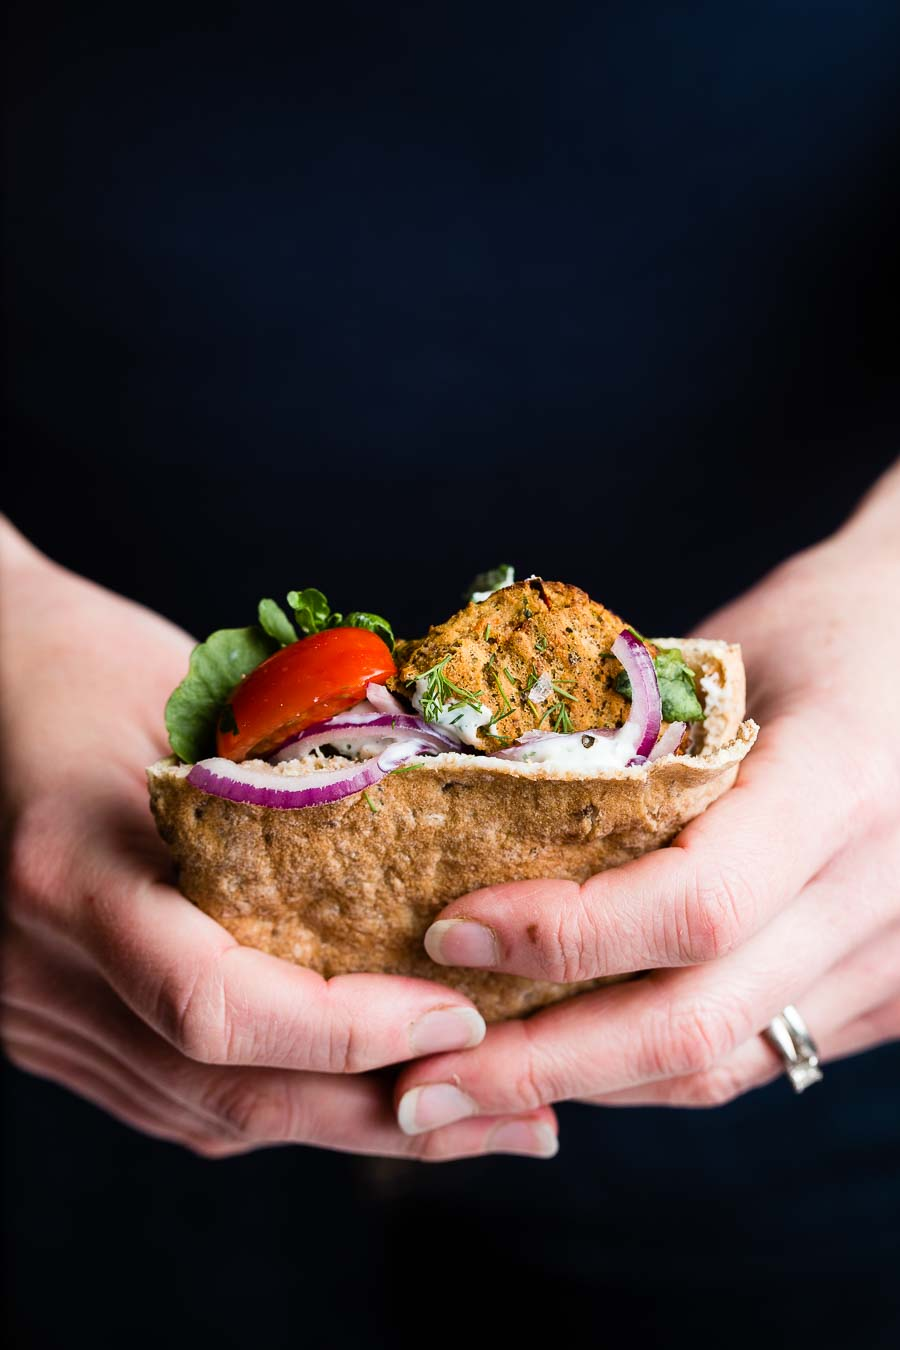 A pita pocket stuffed with cooked falafel tomato, salad, purple onion and dressing, presented by a woman's hands holding the stuffed pita with a dark blue background